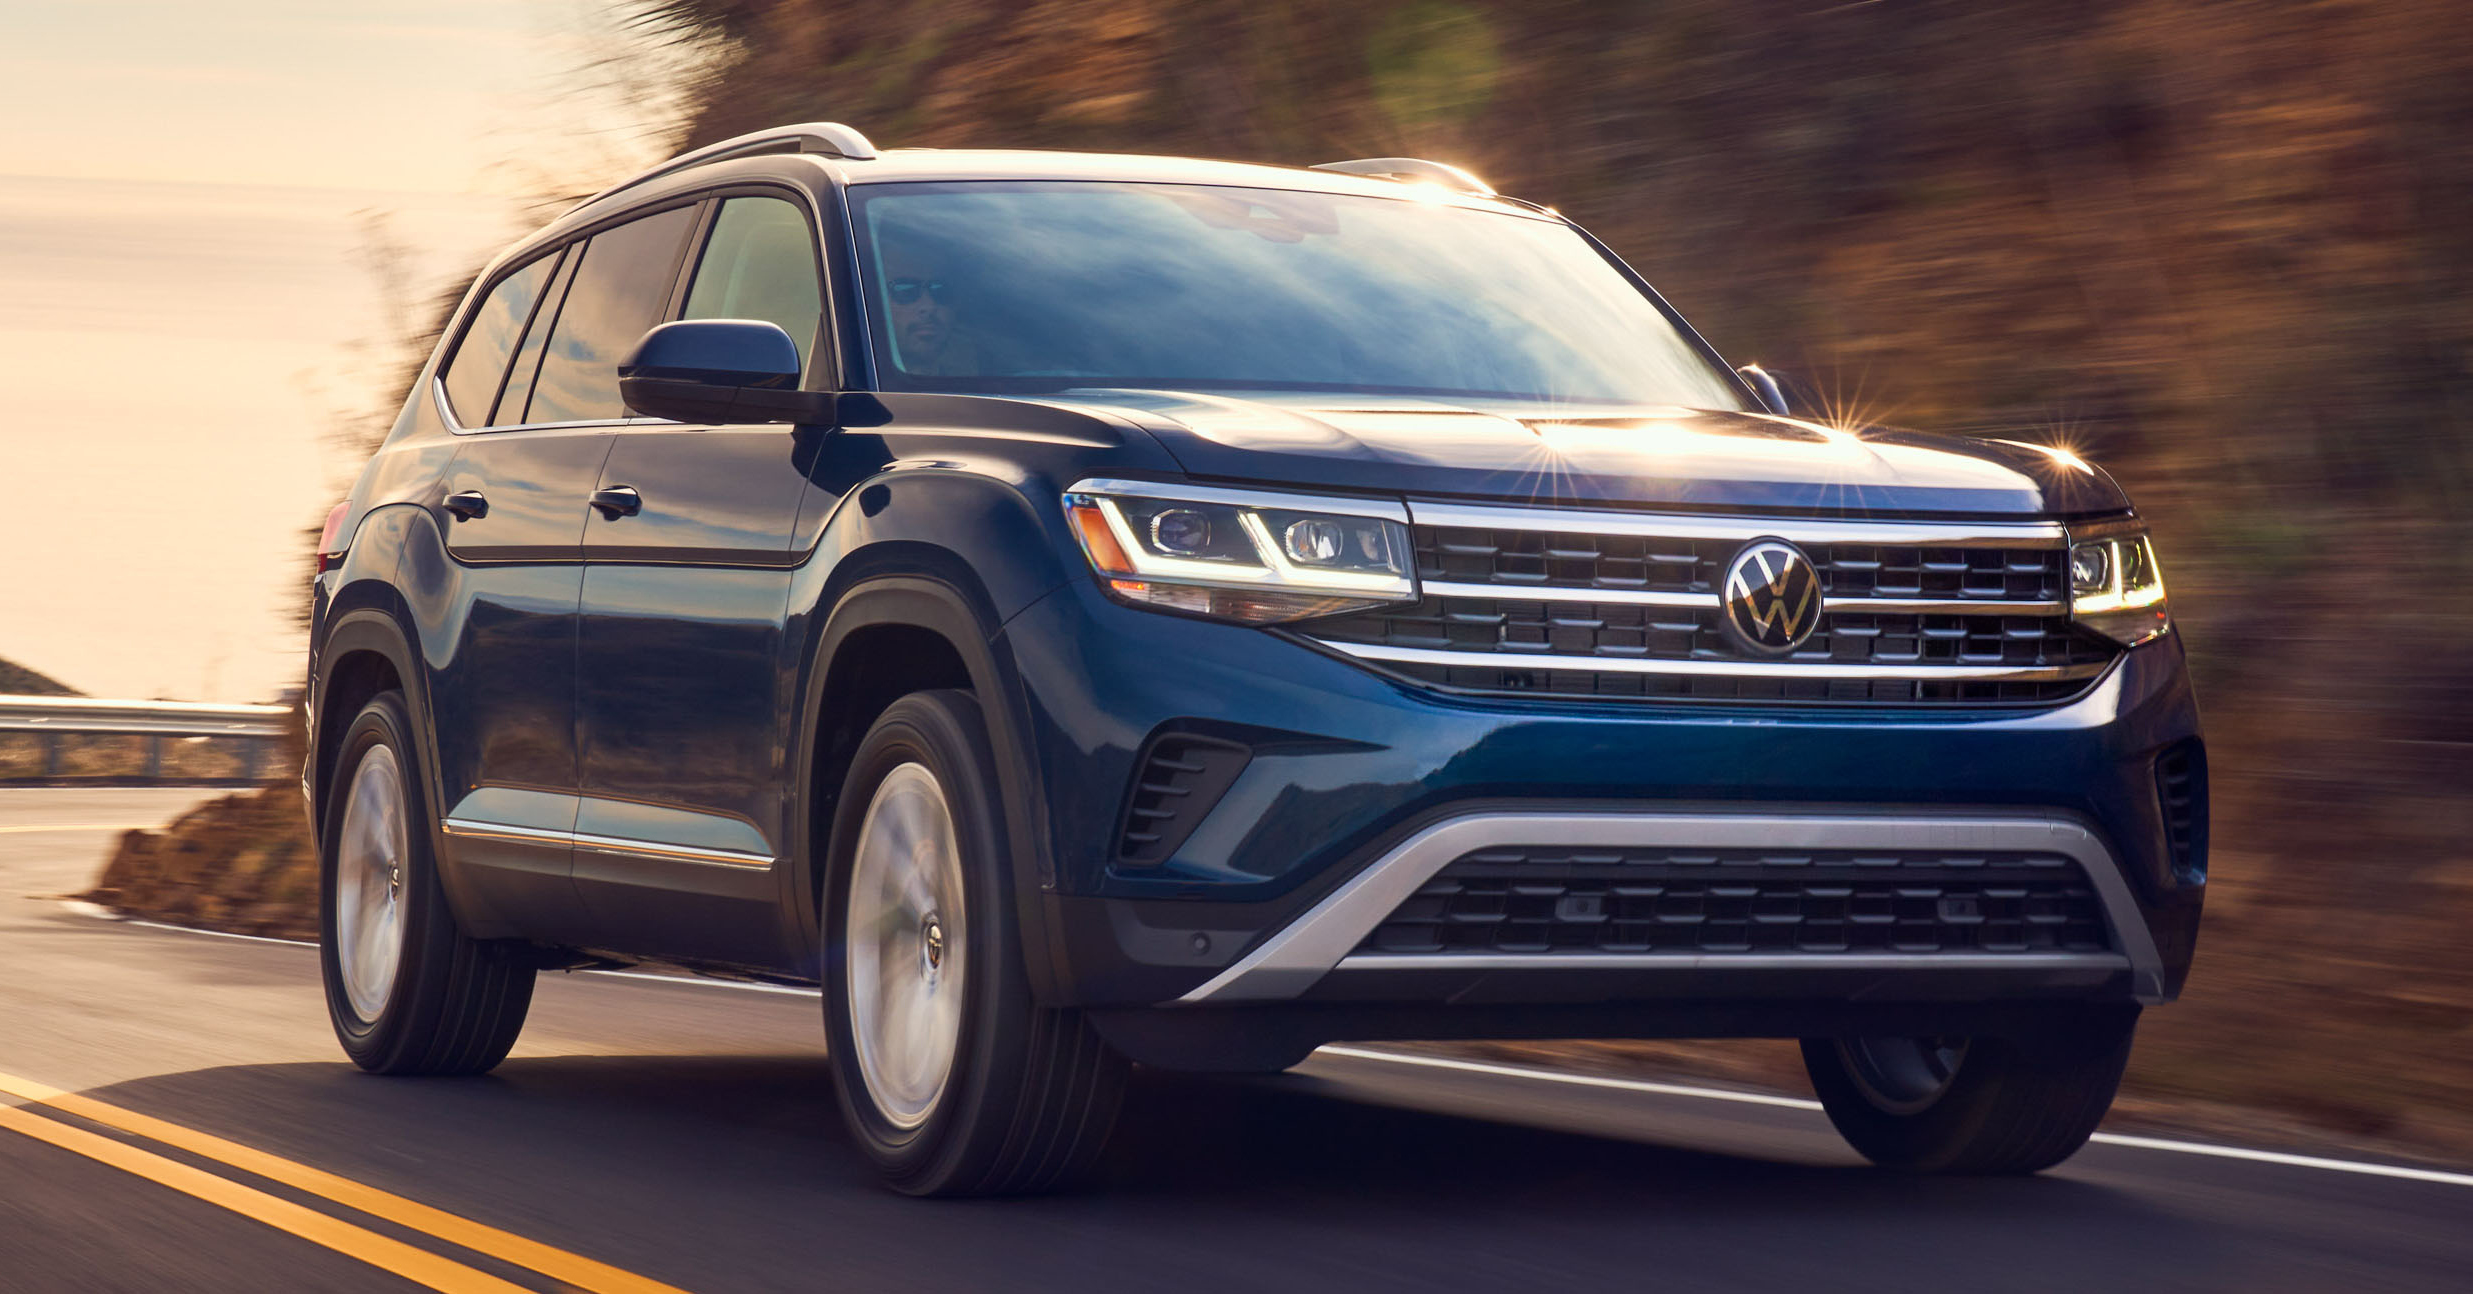 2021 vw atlas 7 seater release date interior  changes